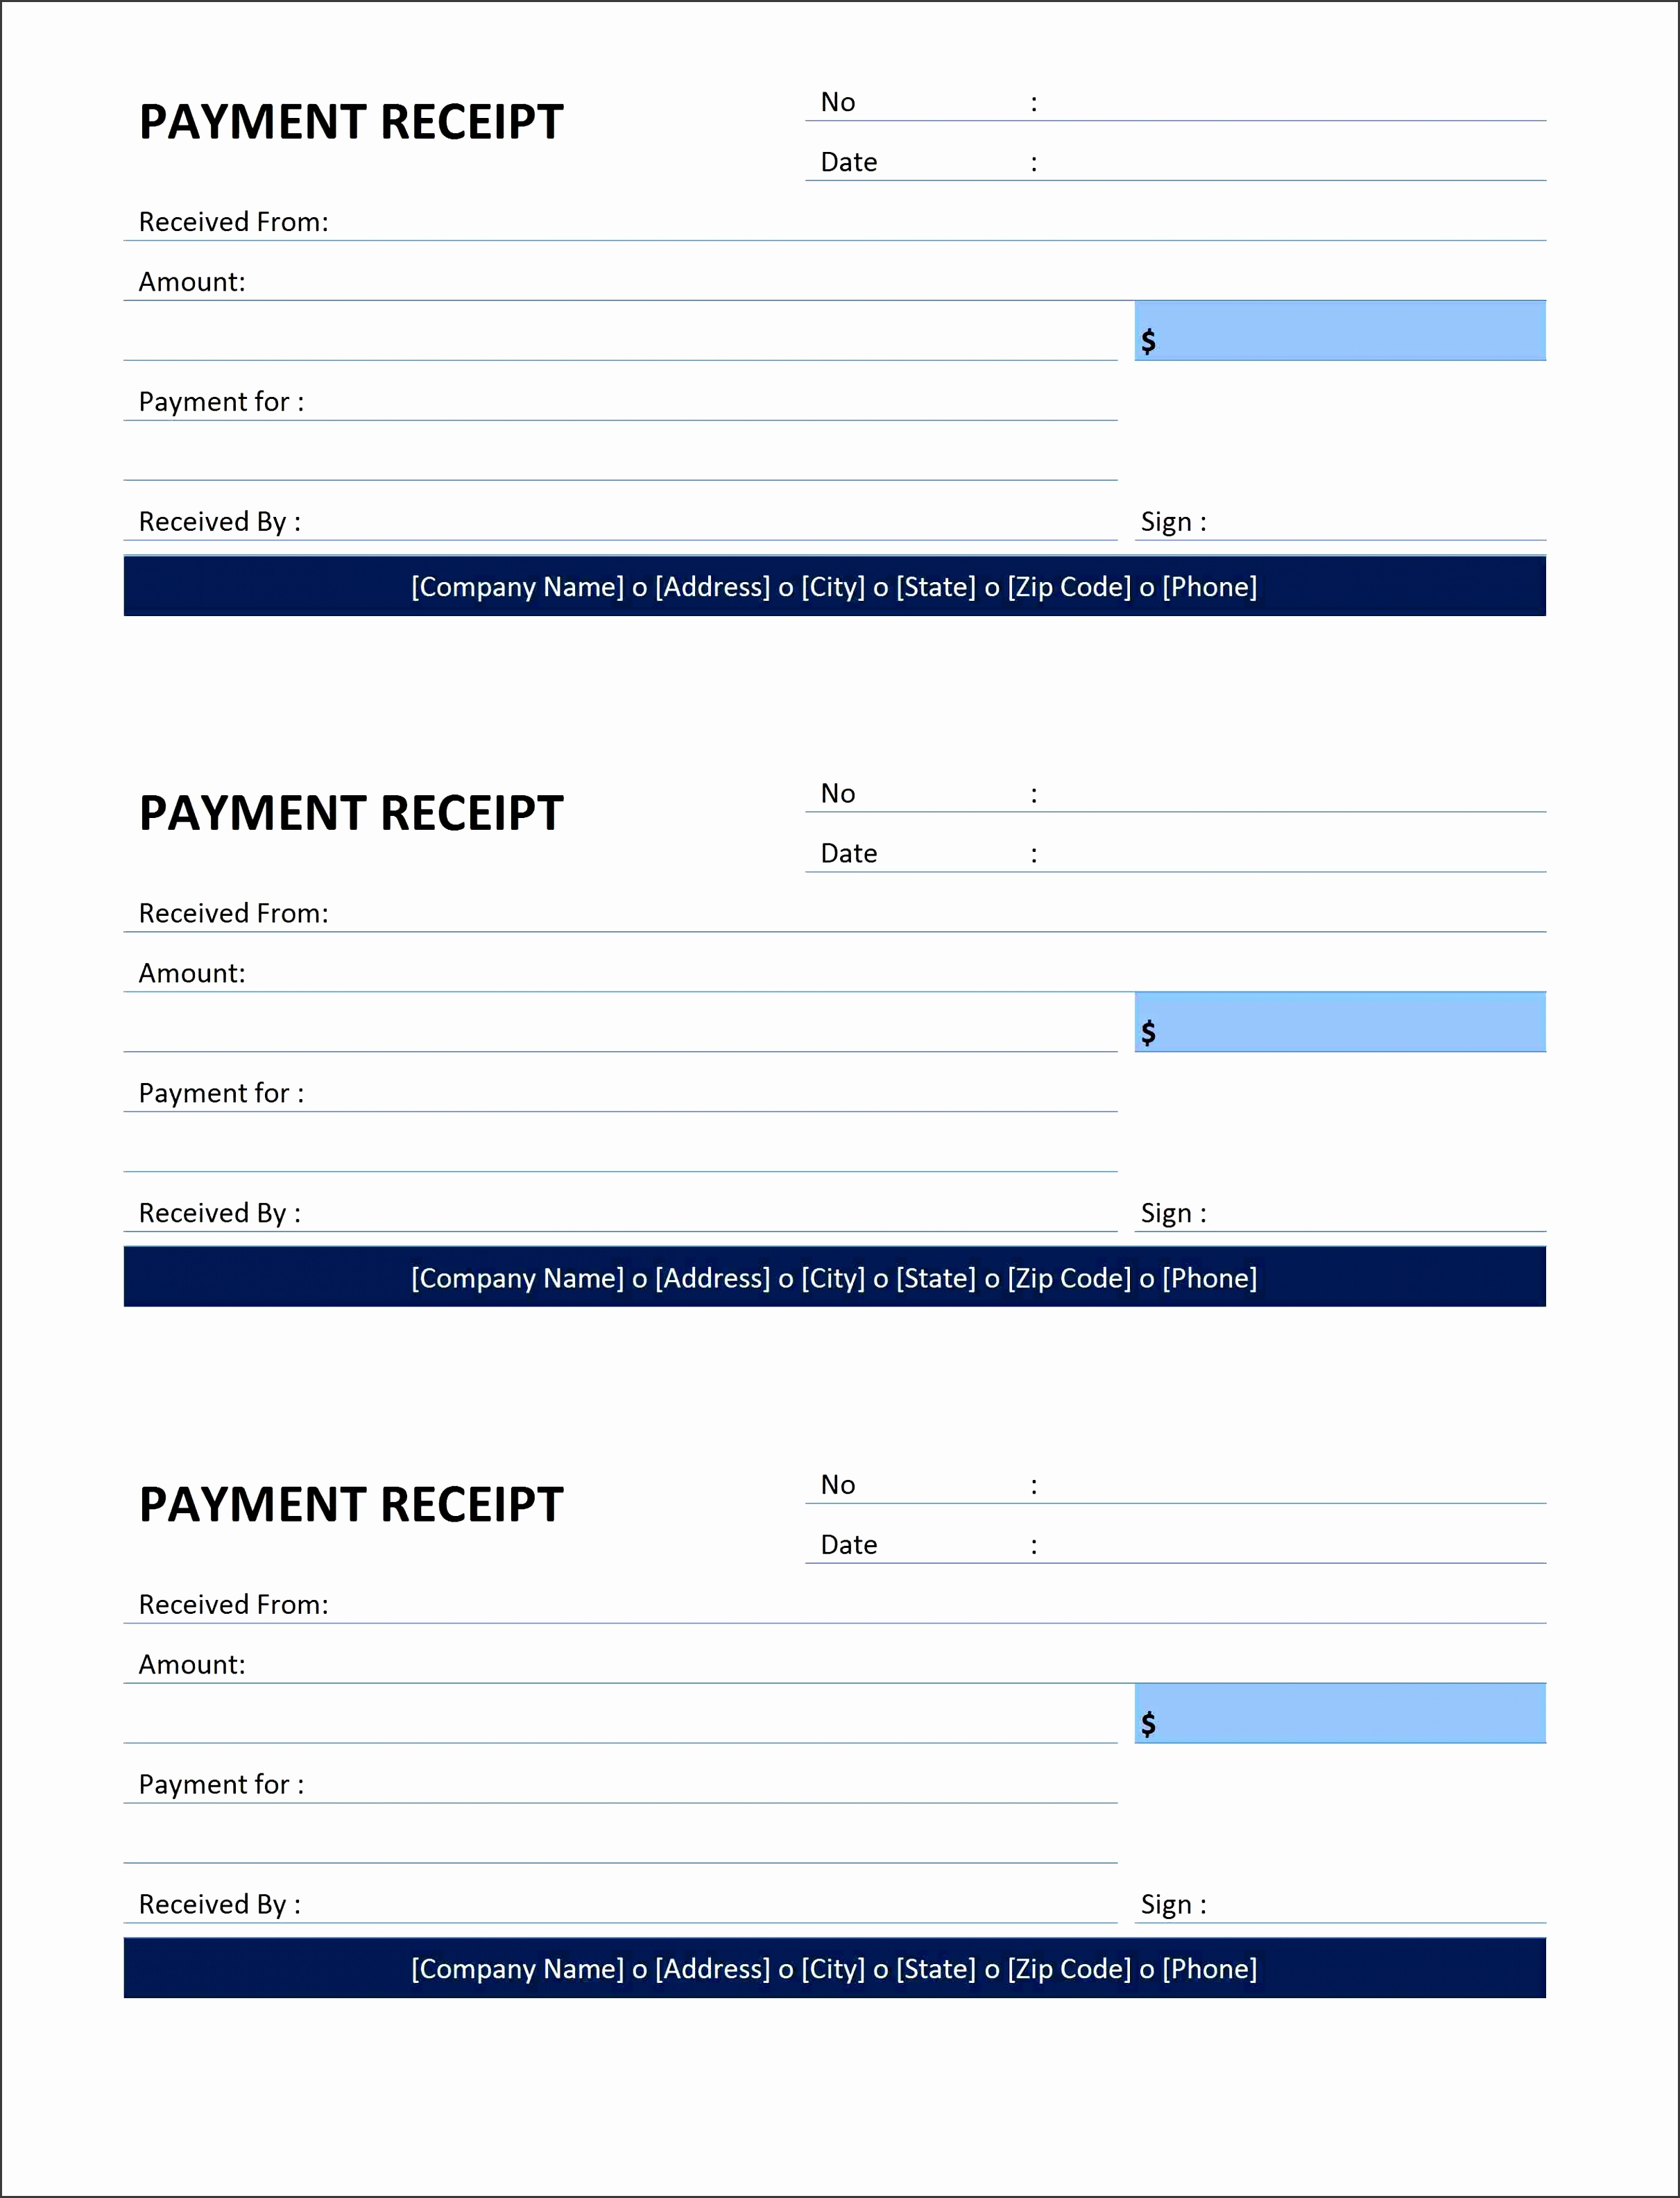 reciept for payment